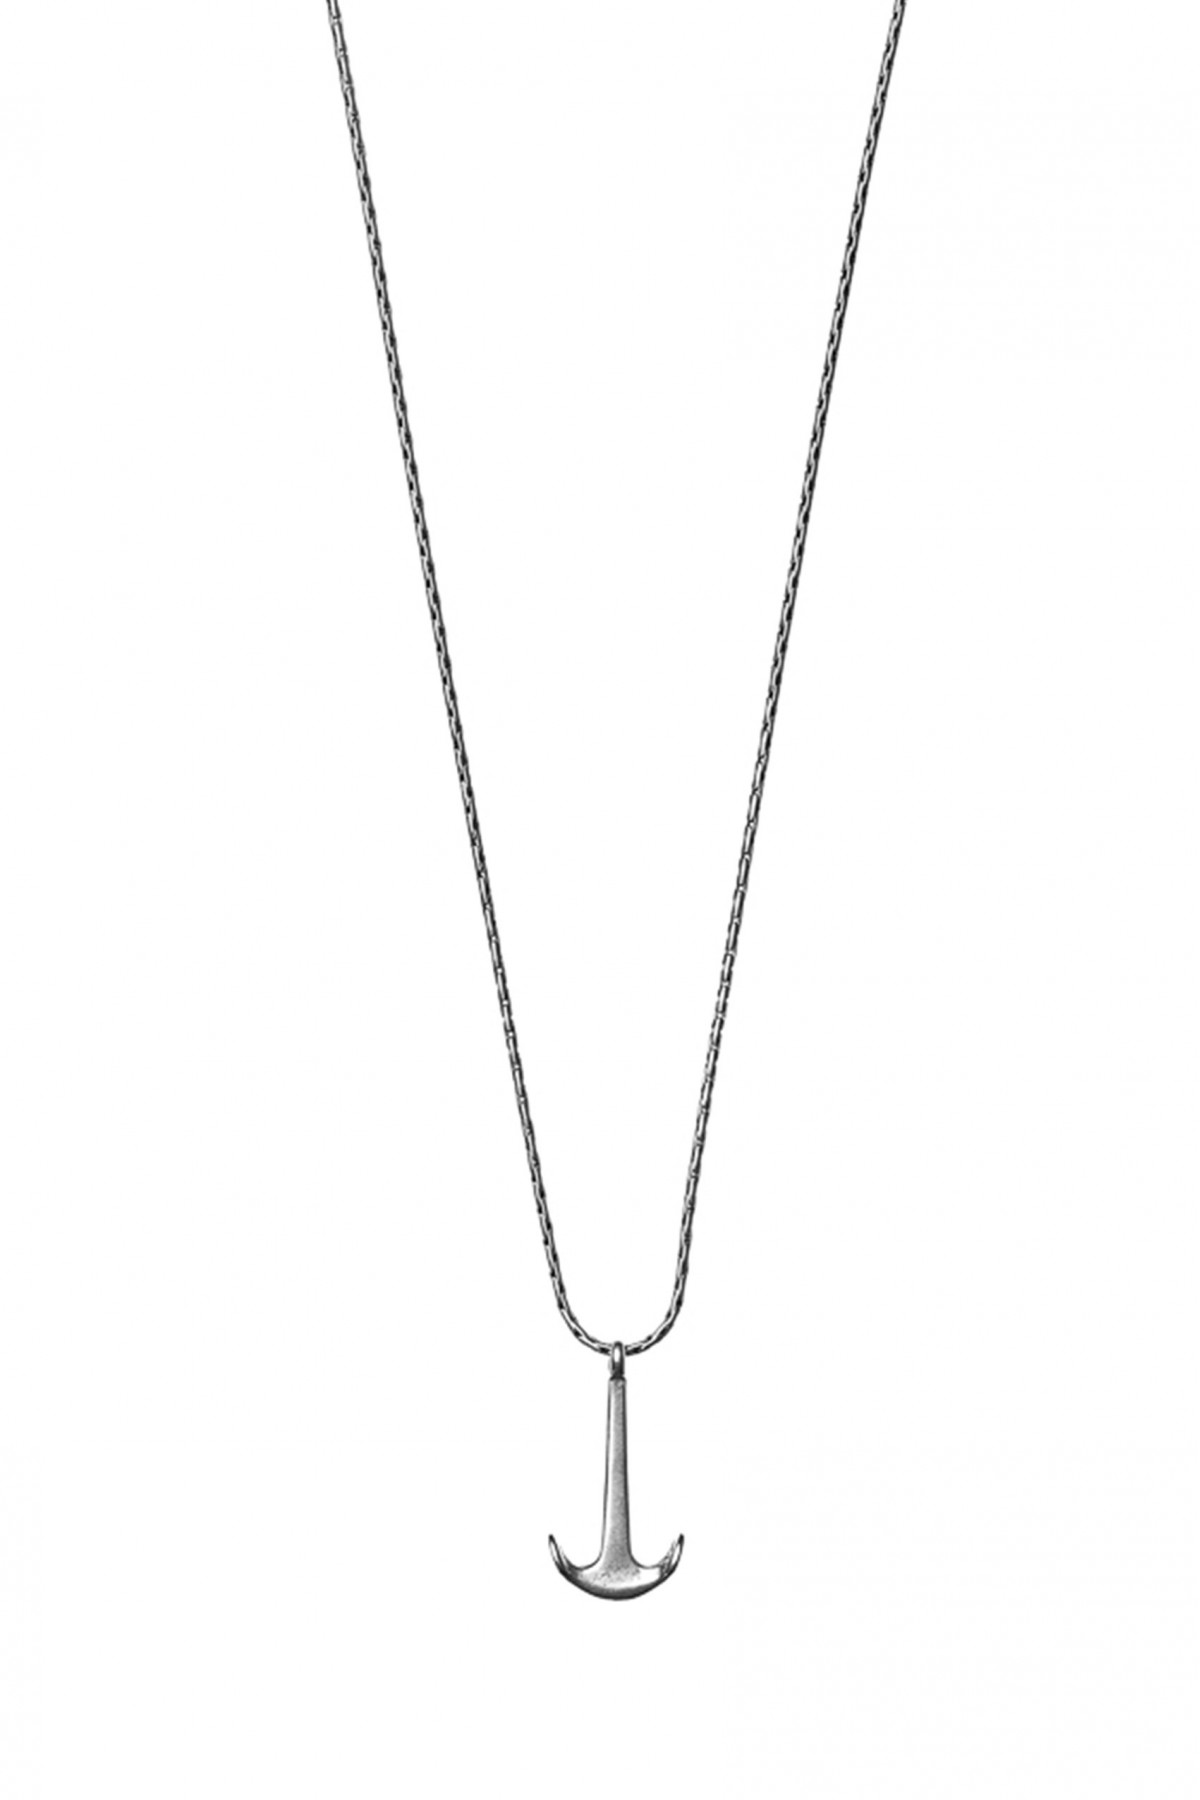 Nazaré Man Necklace